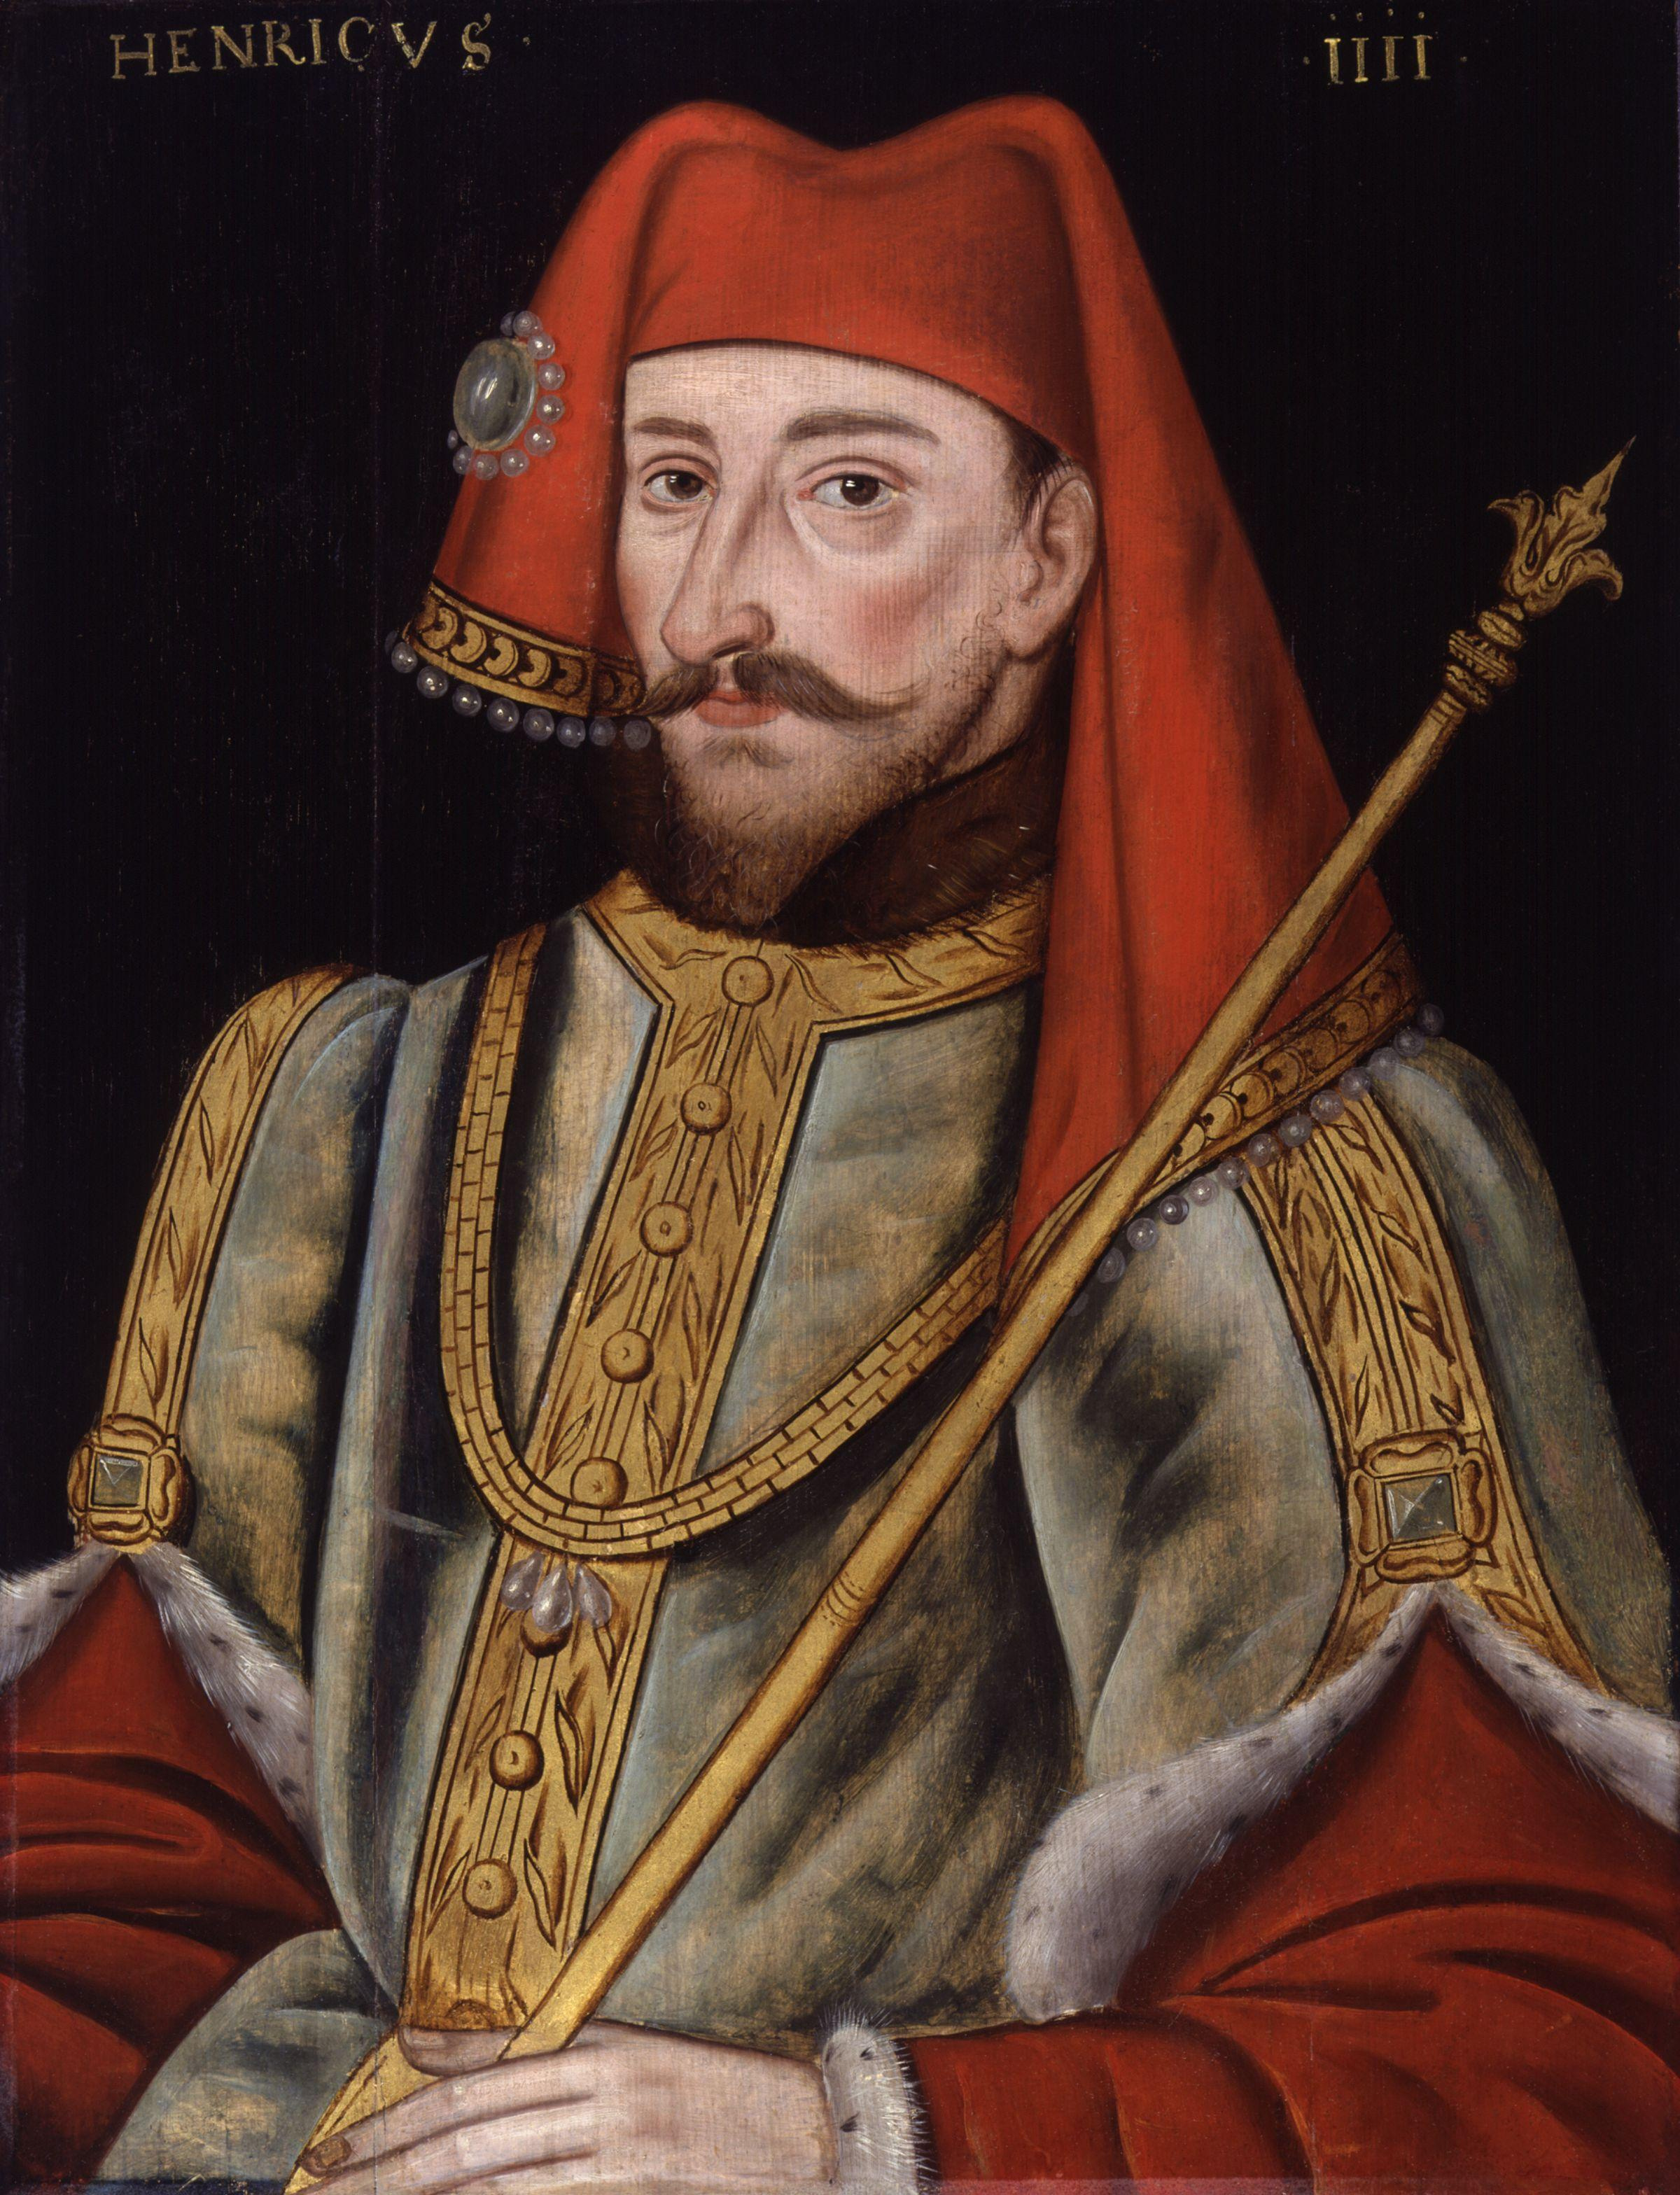 The man who became King Henry IV